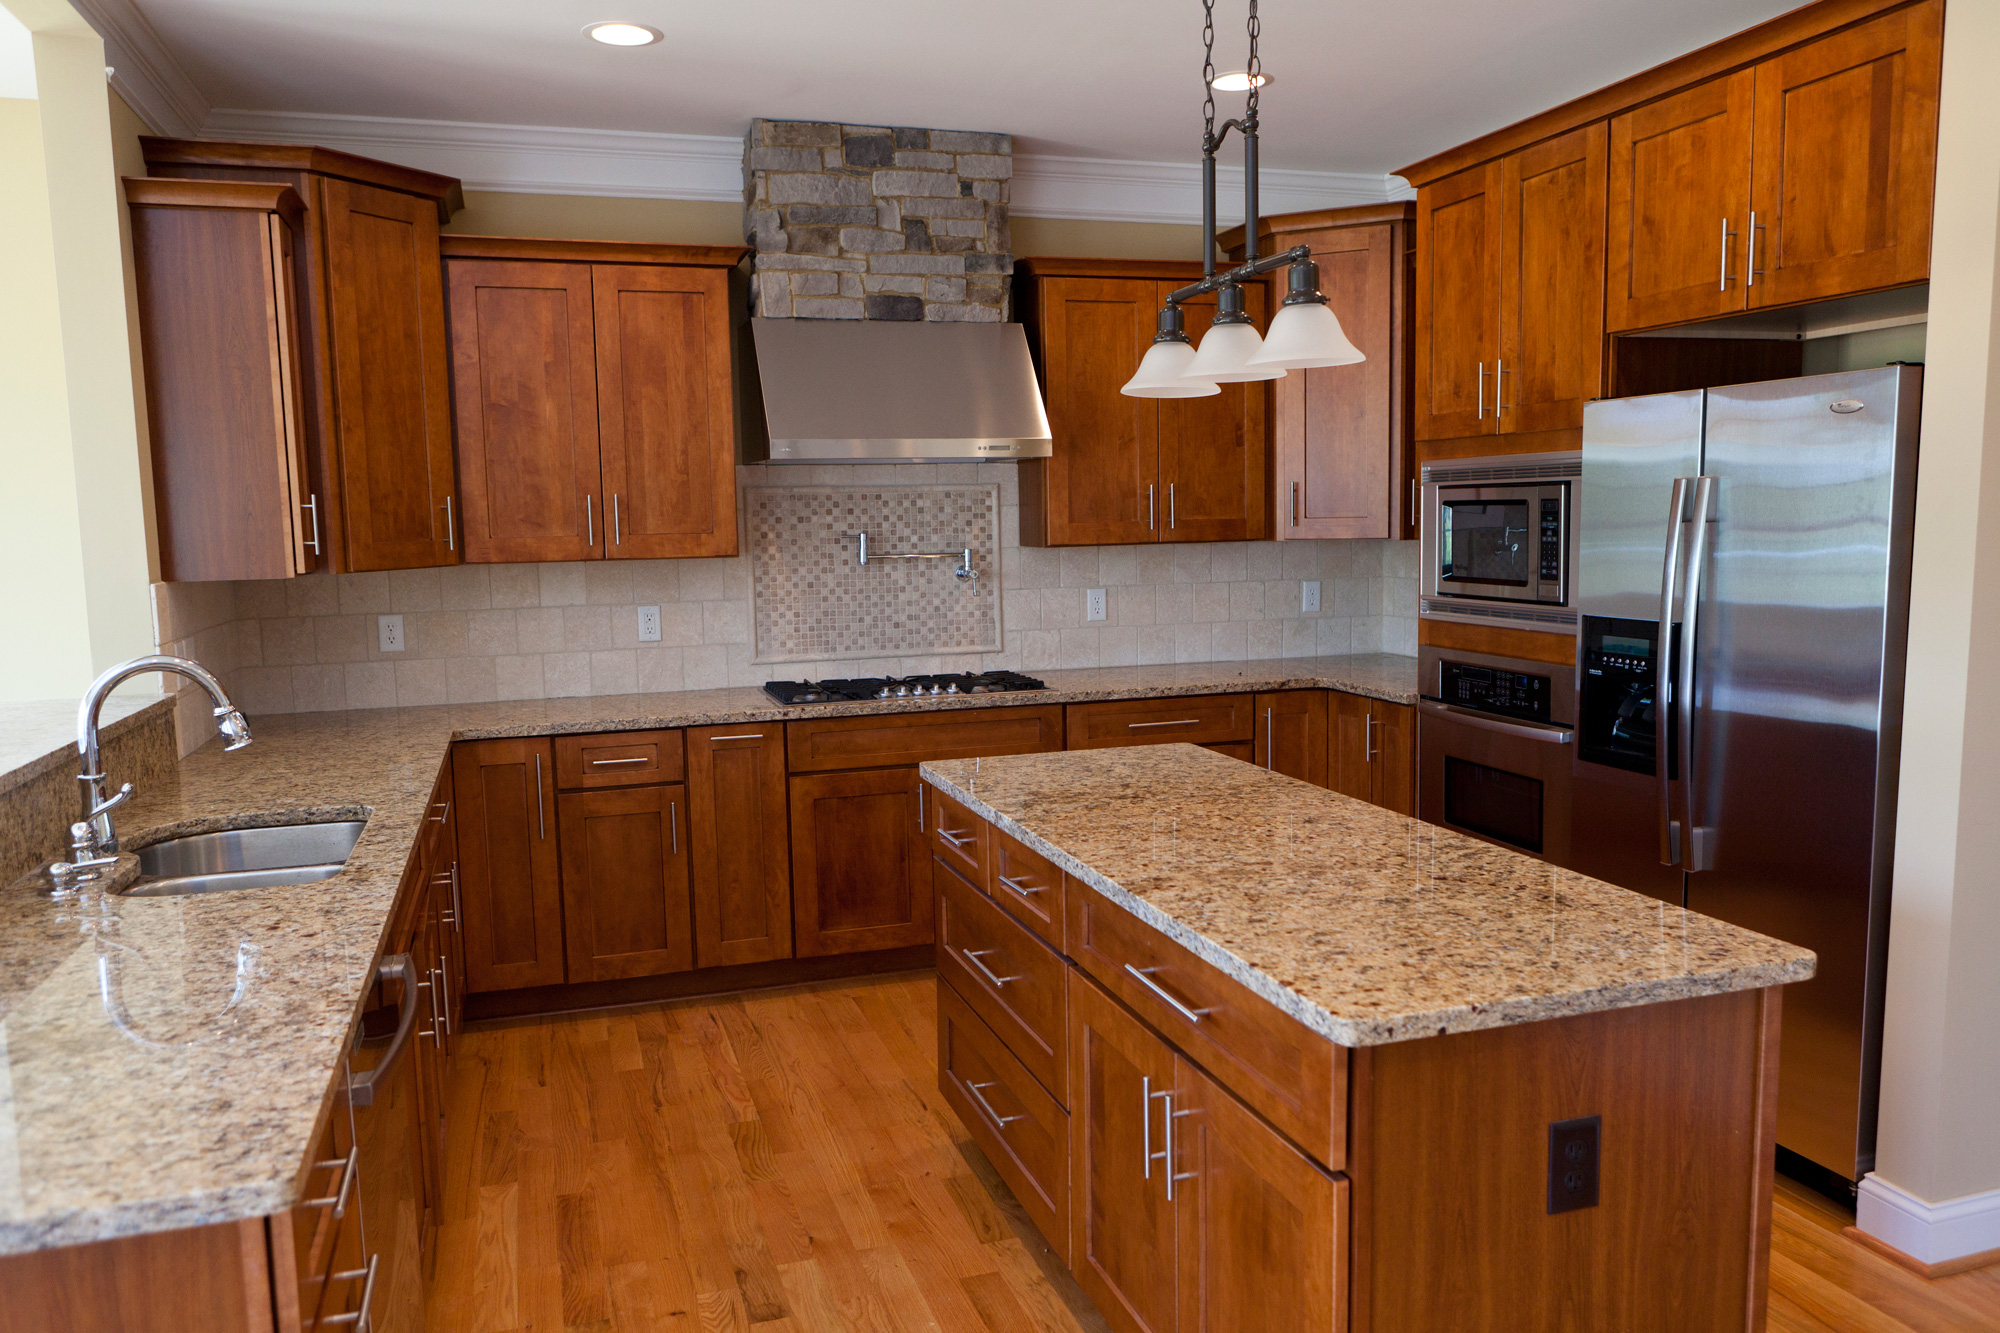 East palo alto contractor and home remodel company for Kitchen and remodeling